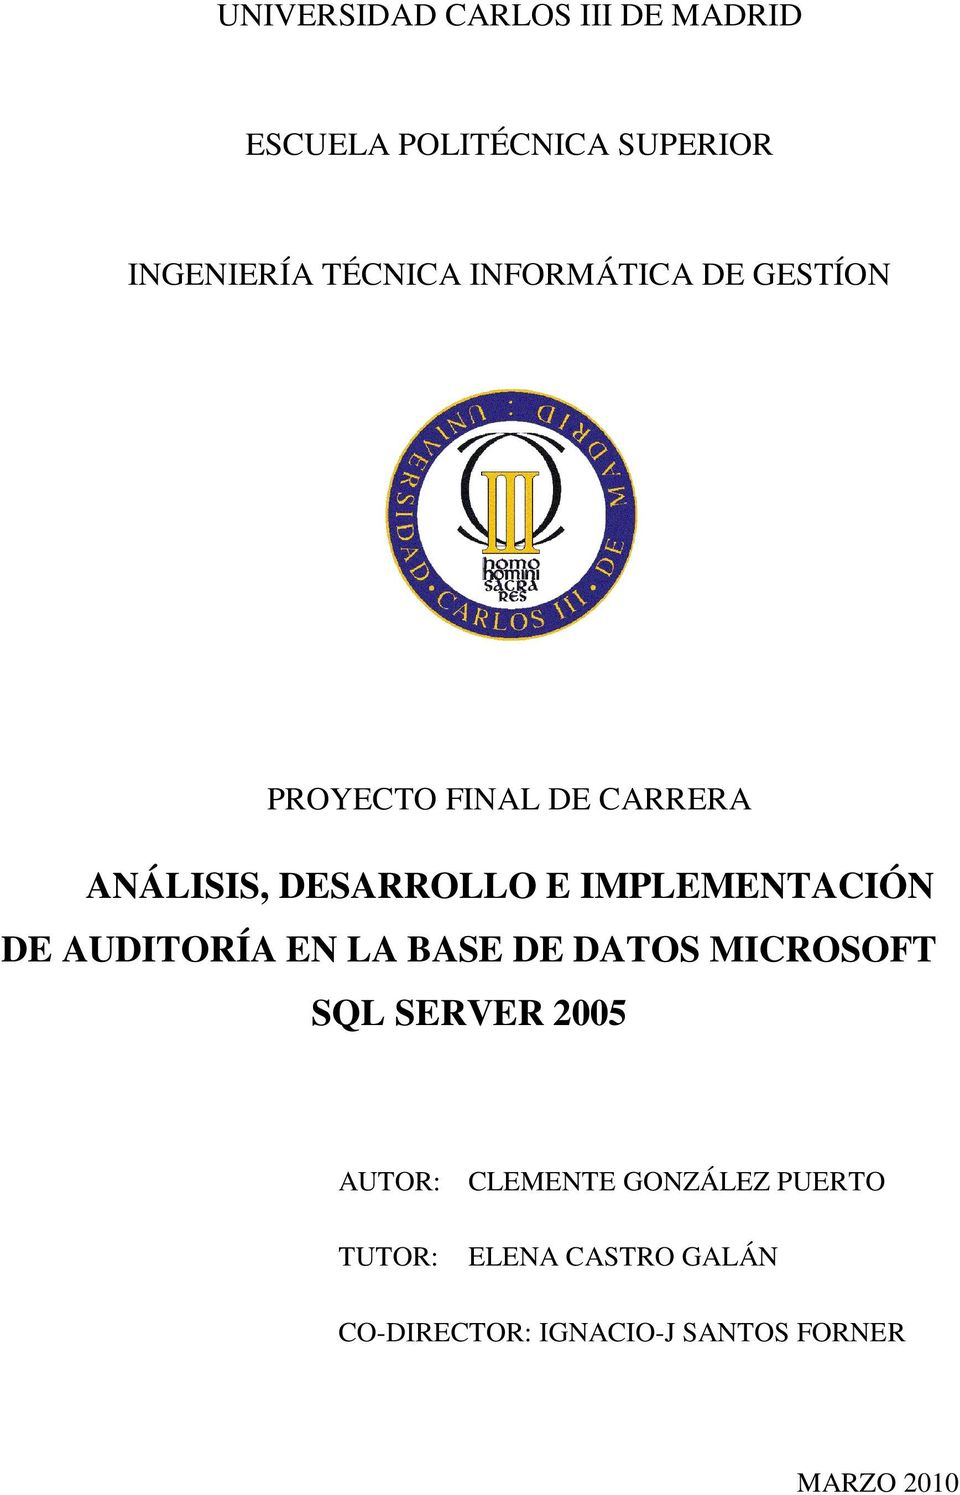 IMPLEMENTACIÓN DE AUDITORÍA EN LA BASE DE DATOS MICROSOFT SQL SERVER 2005 AUTOR: